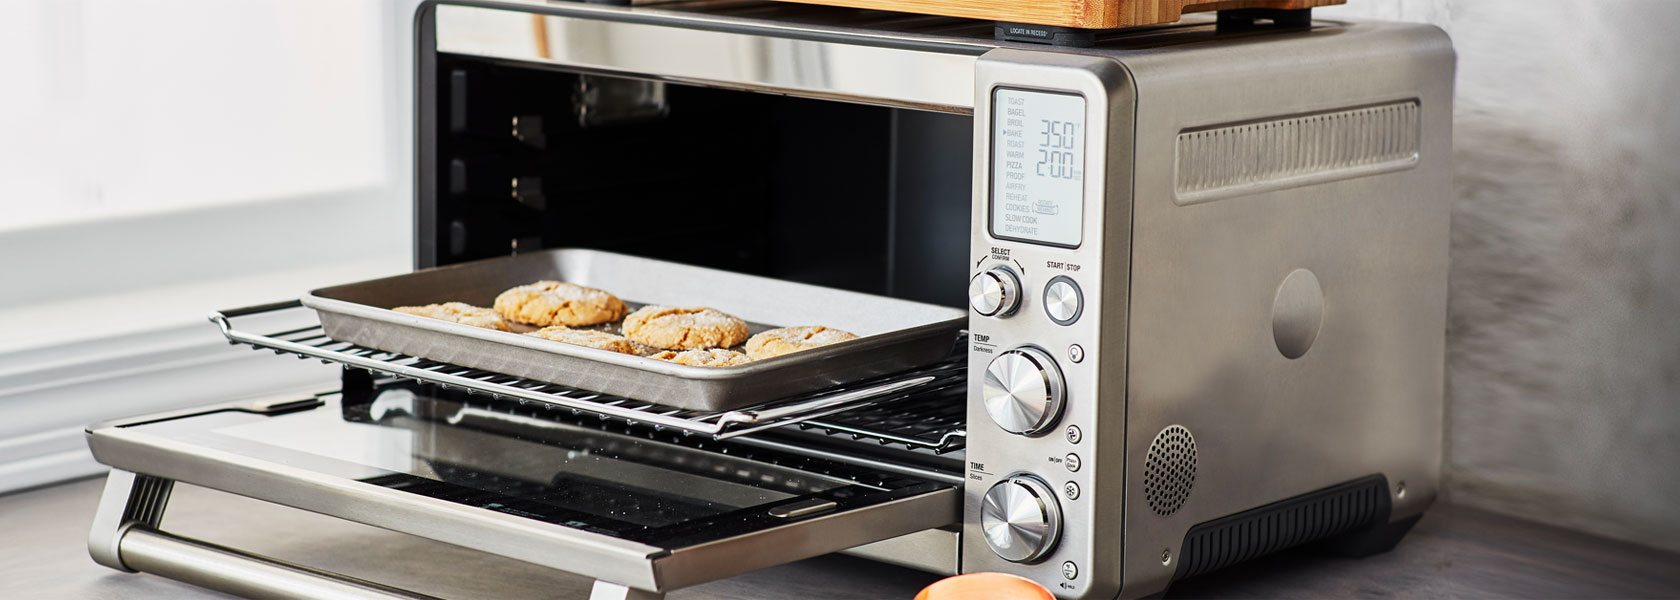 Breville oven sale up to 45% off